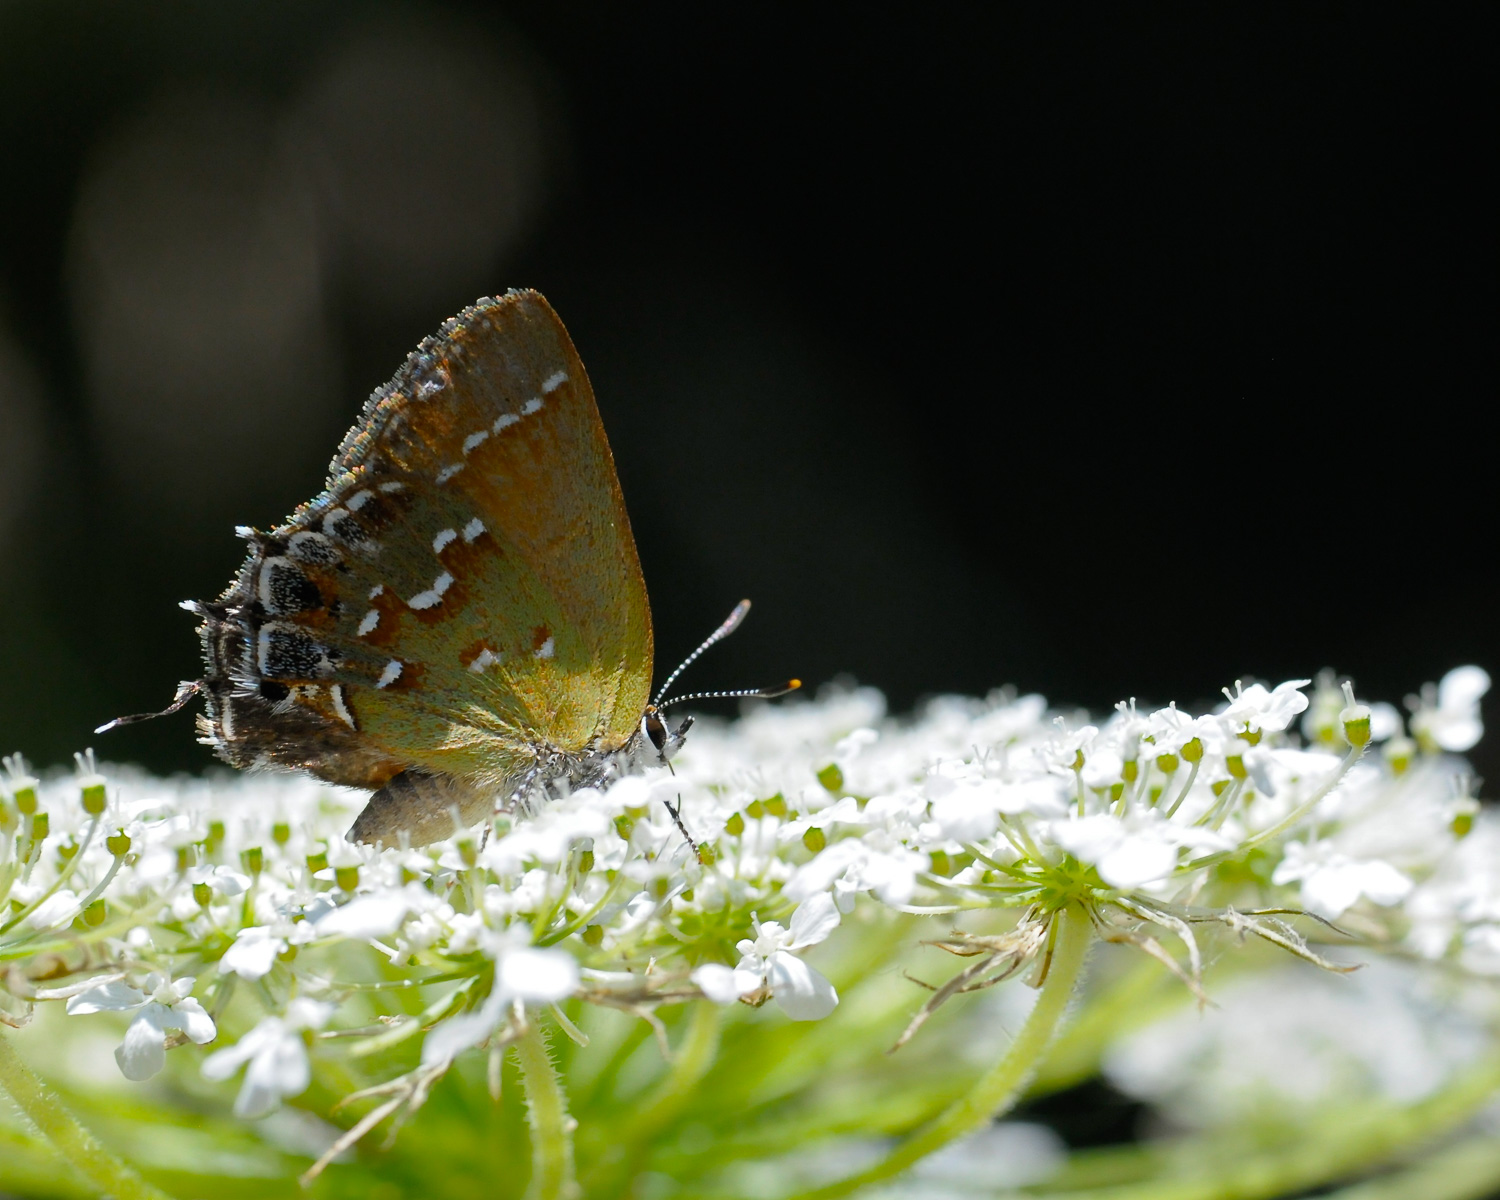 Juniper Hairstreak on Queen Anne's Lace near Newton, Kansas